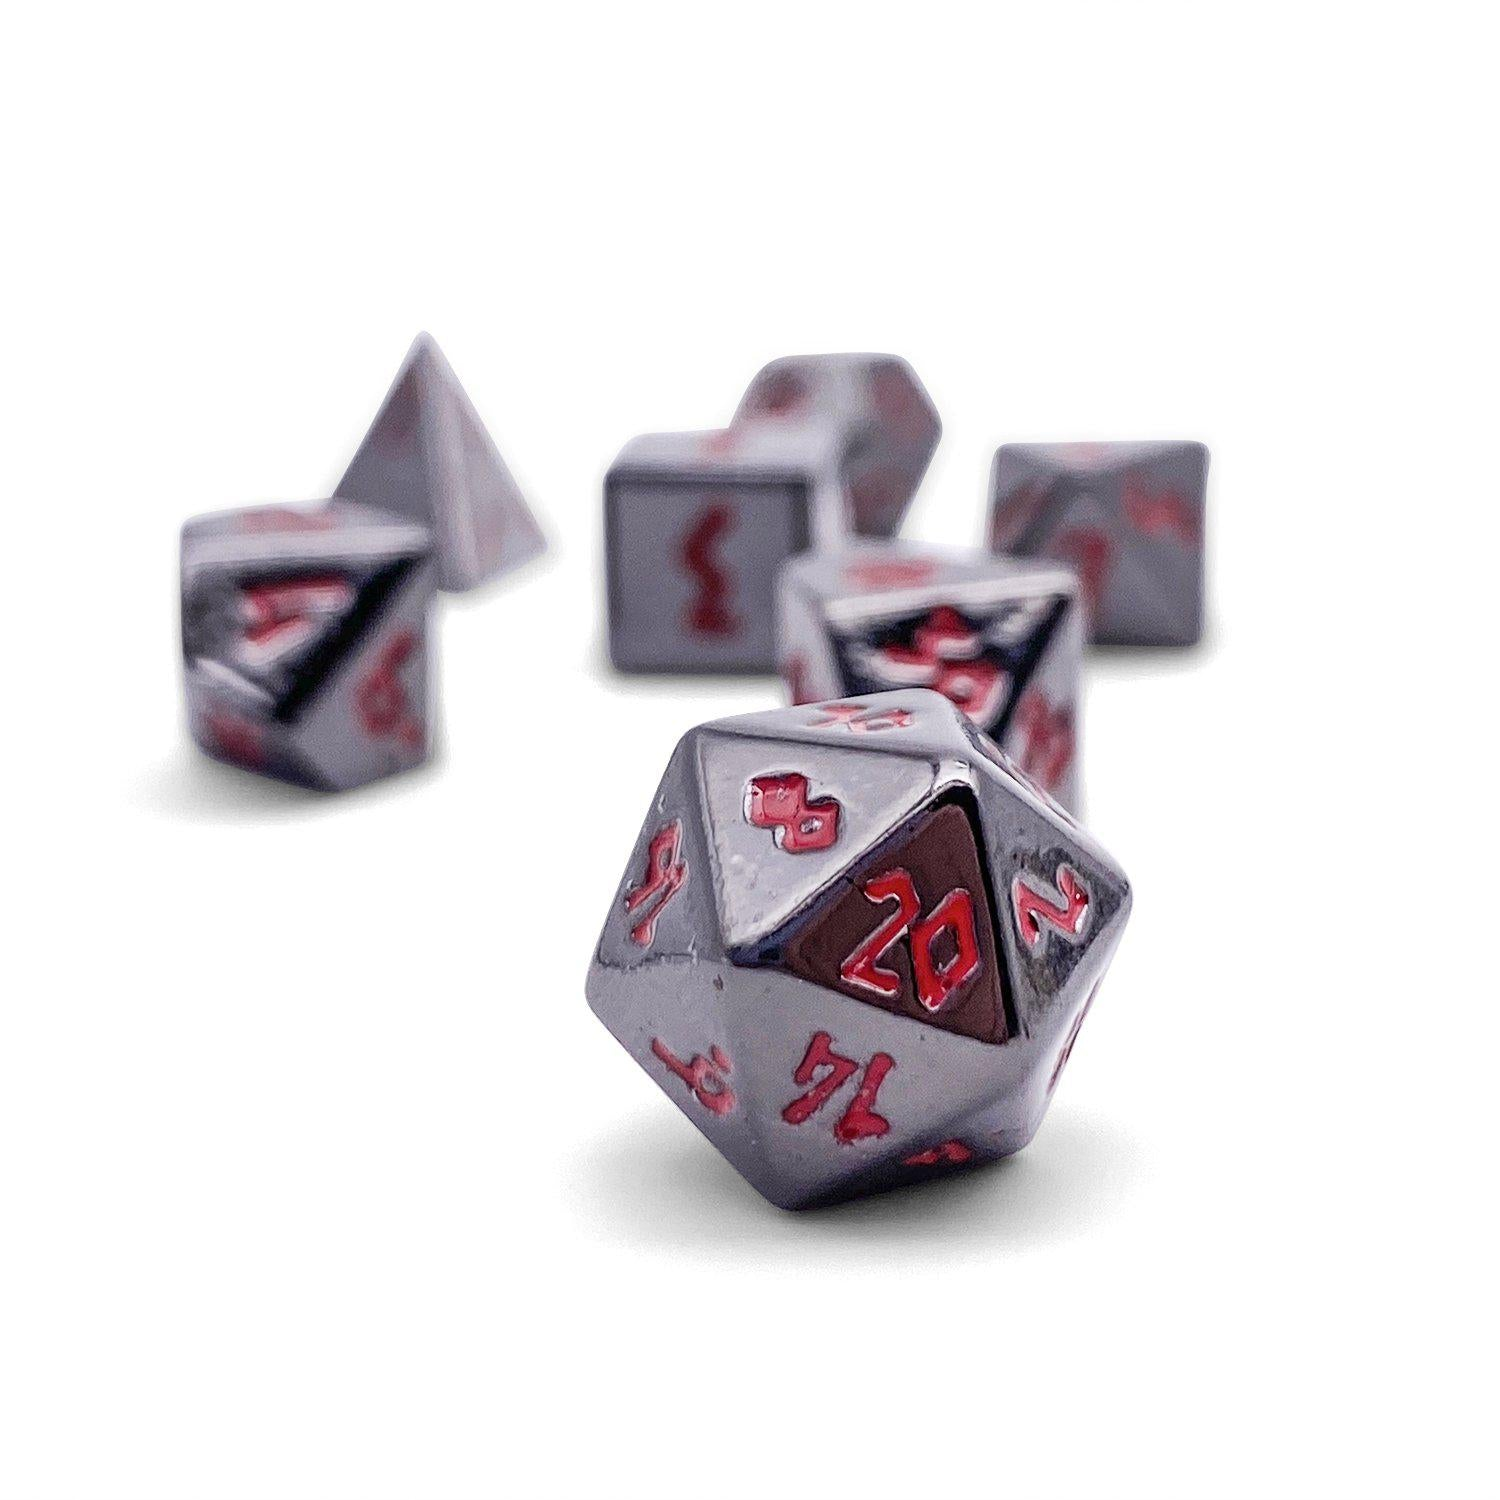 Nightmare Black Pebble ™ Dice - 10mm Alloy Mini Polyhedral Dice Set